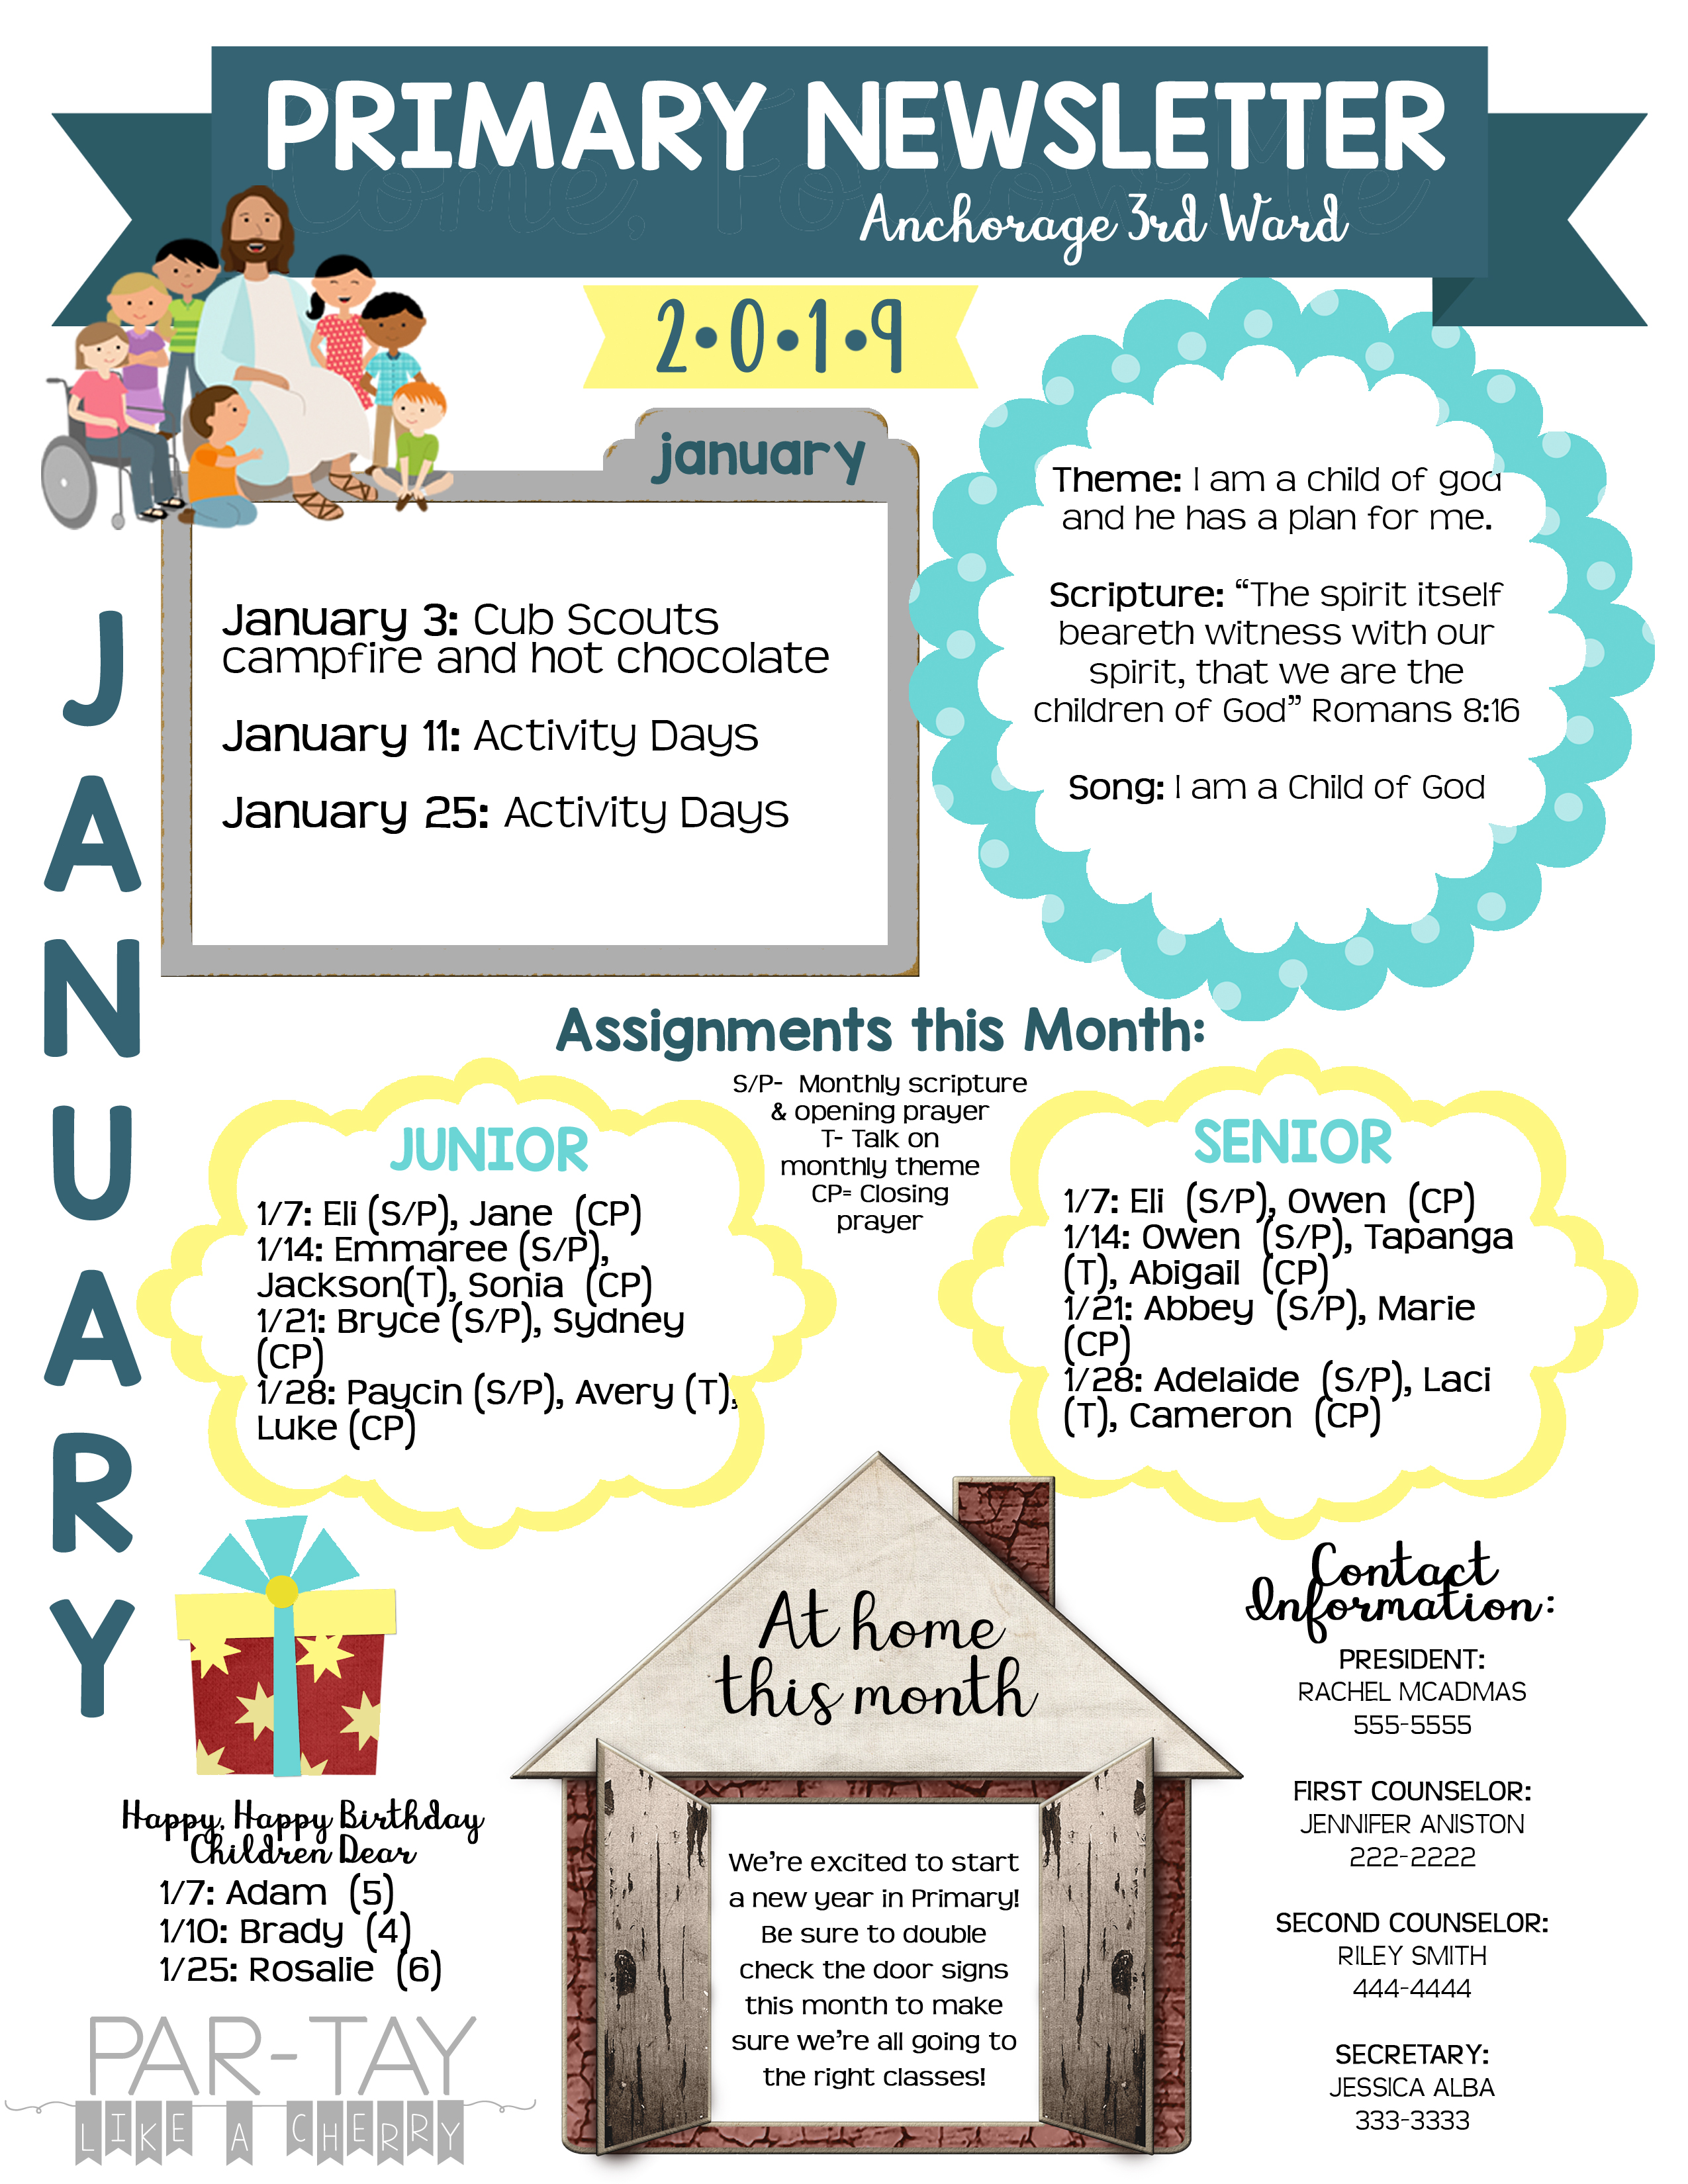 NEWSLETTER-TEMPLATE  Primary Newsletter Templates Pdf on create your own printable, hr employee, lds relief society, chino california, cover design, february responsive classroom, safety box winter,